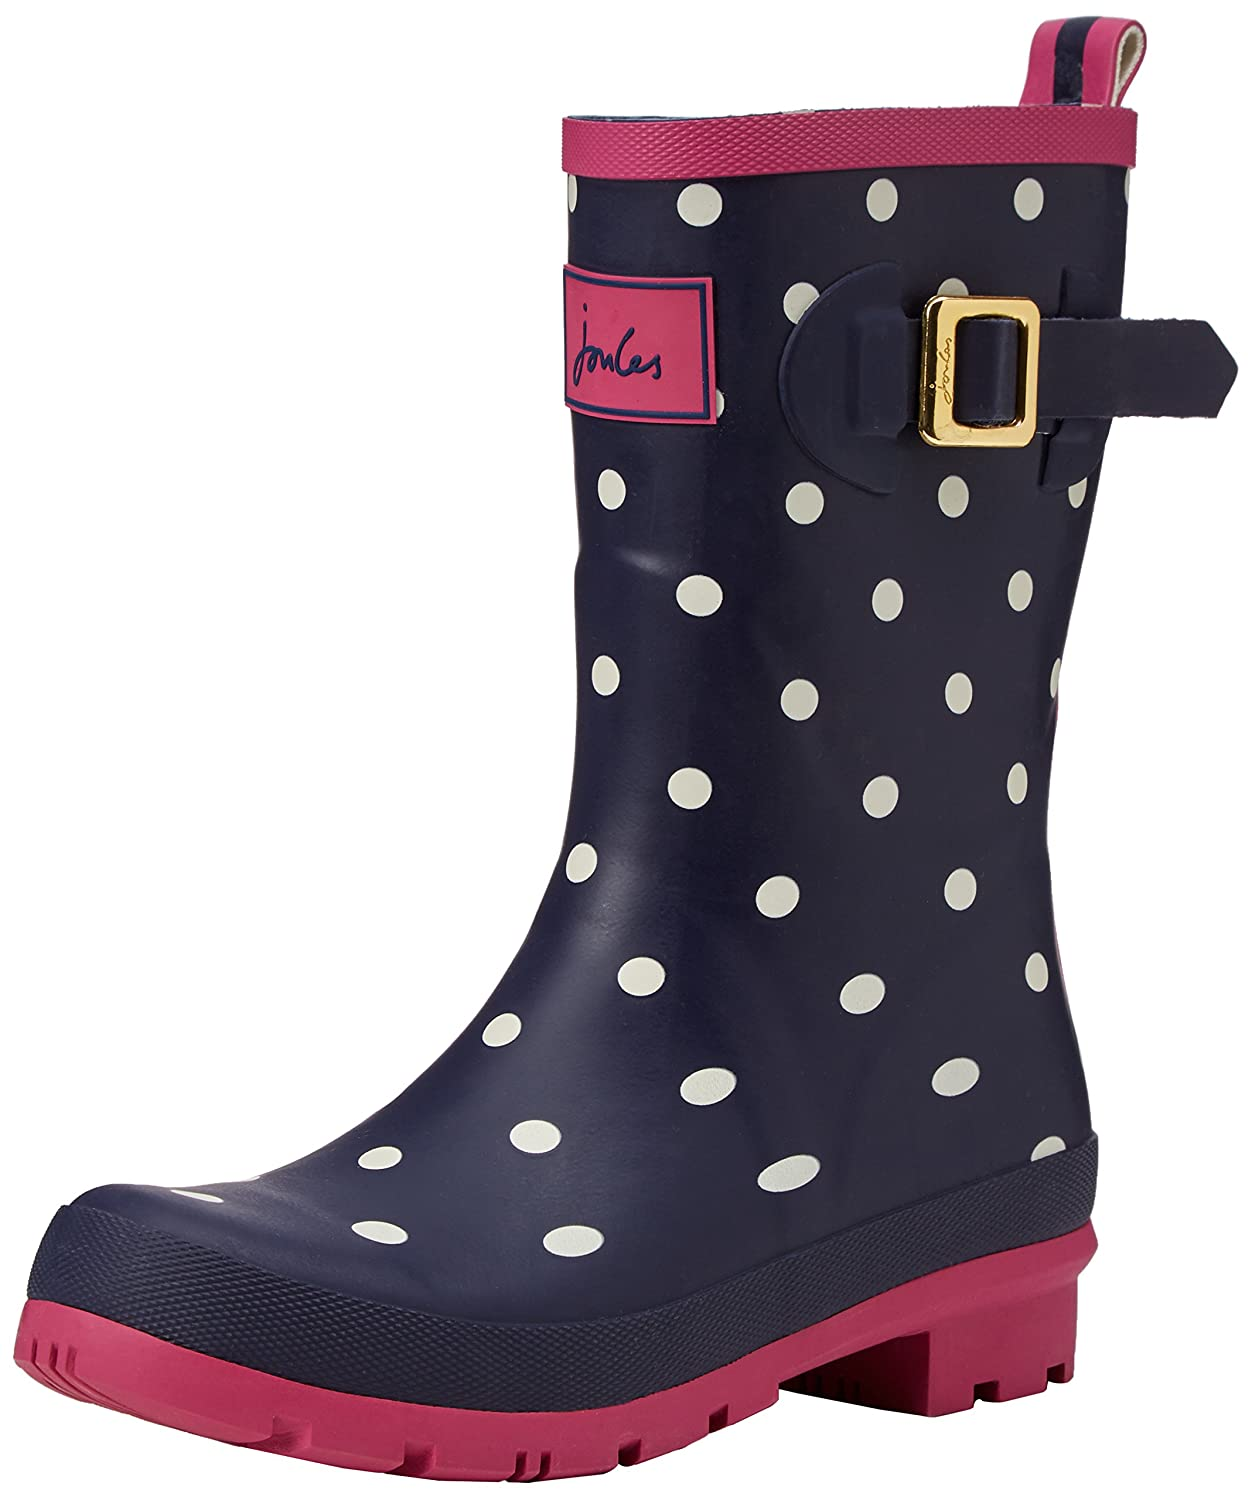 Joules Women's Molly Welly Rain Boot B00VLNPCMG 7 M US|Navy Spot White